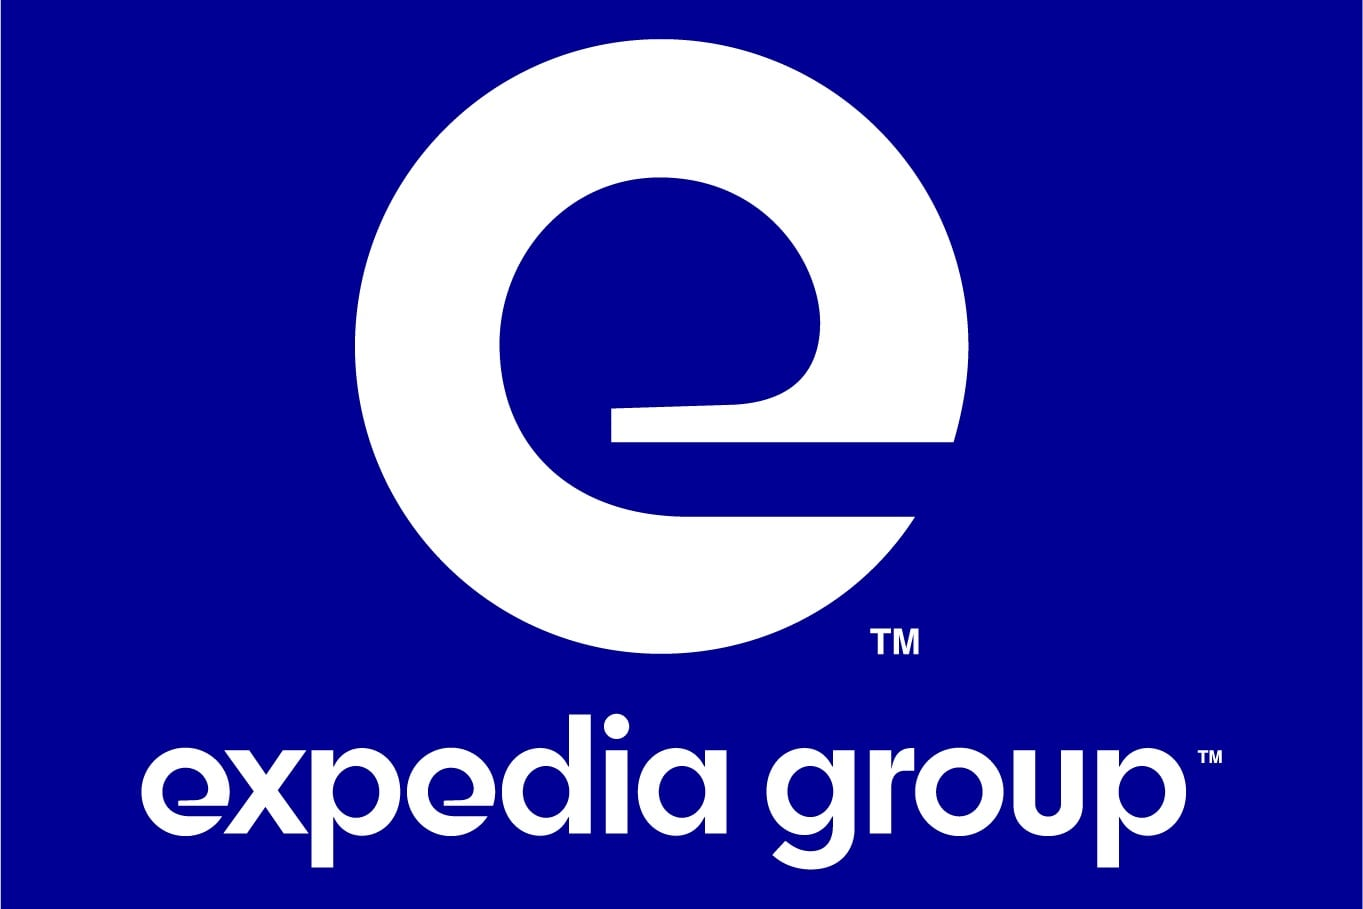 Expedia Logo - Expedia Tweaks Name After Priceline Rebrand – Skift